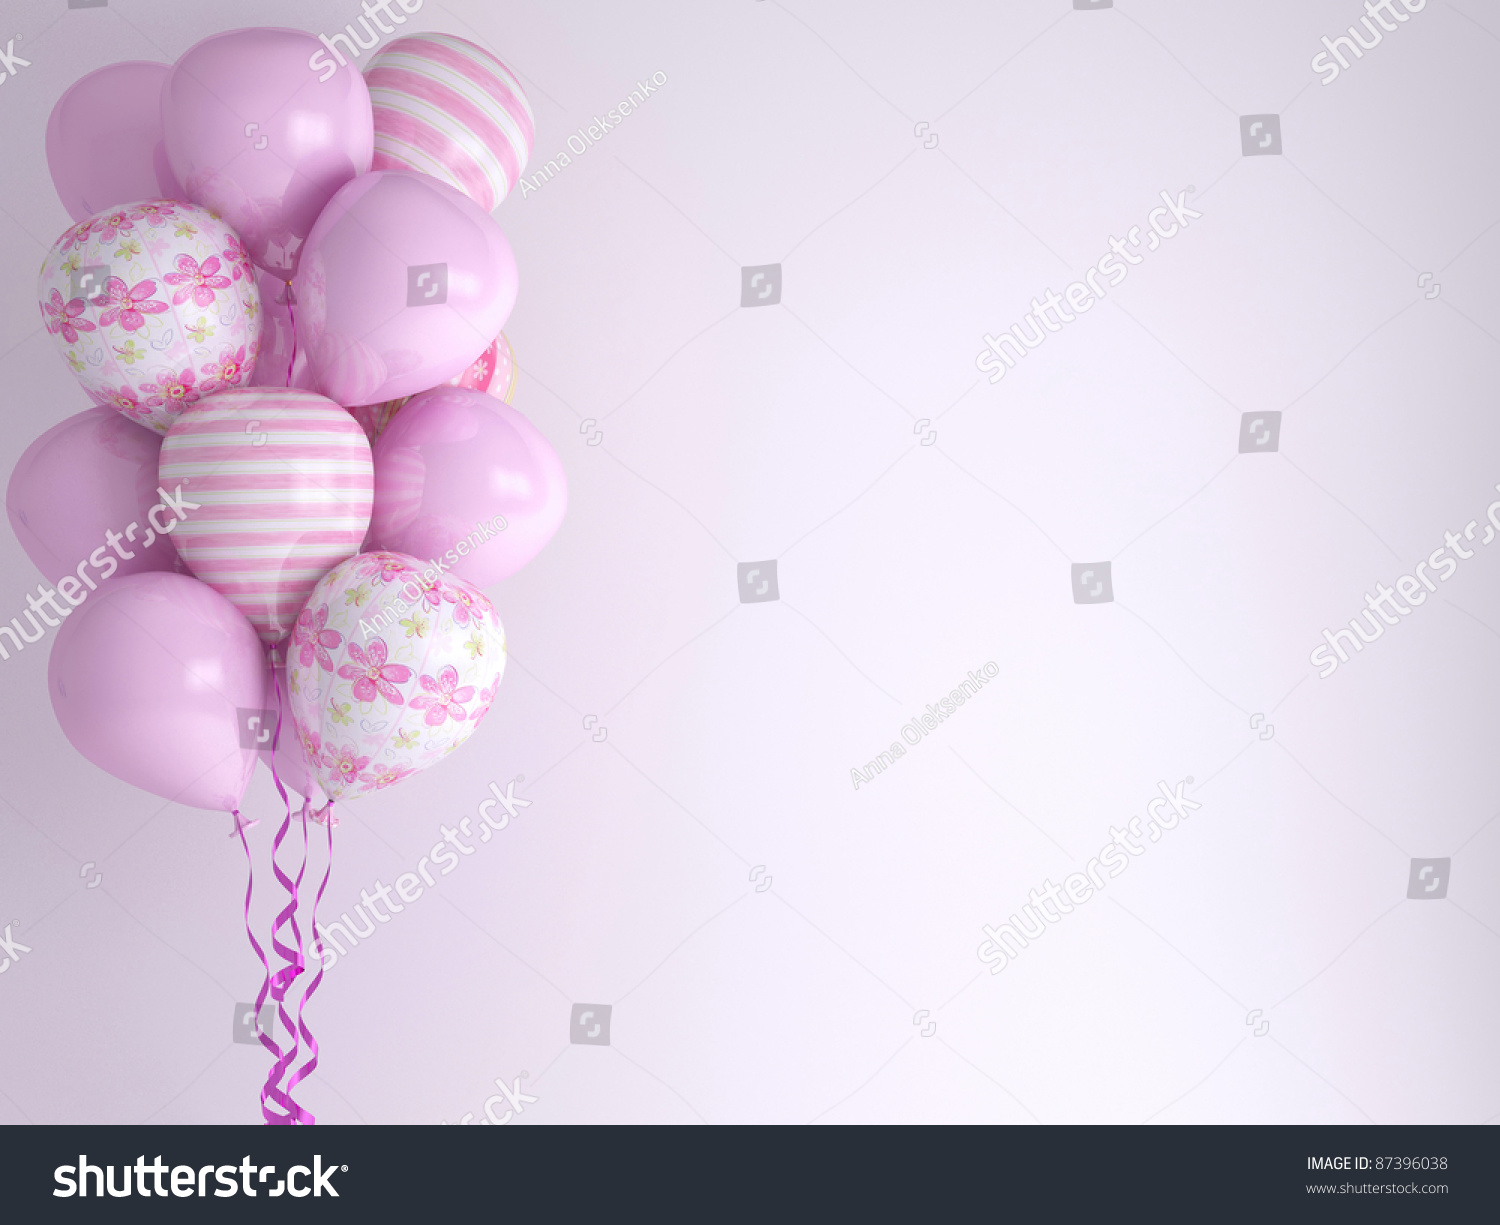 Pink Balloons Background Celebration Concept 3d Stock